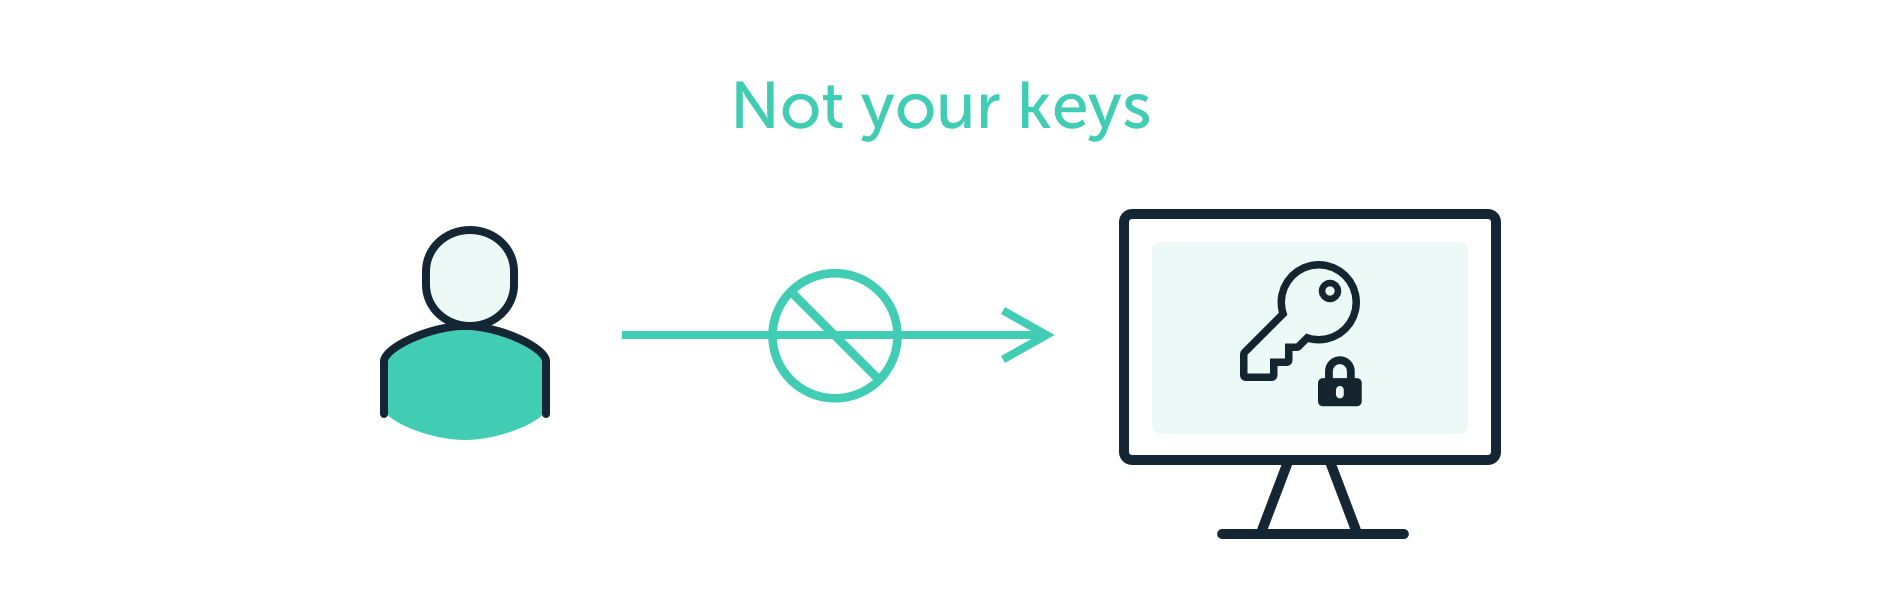 Not your keys, not your bitcoins